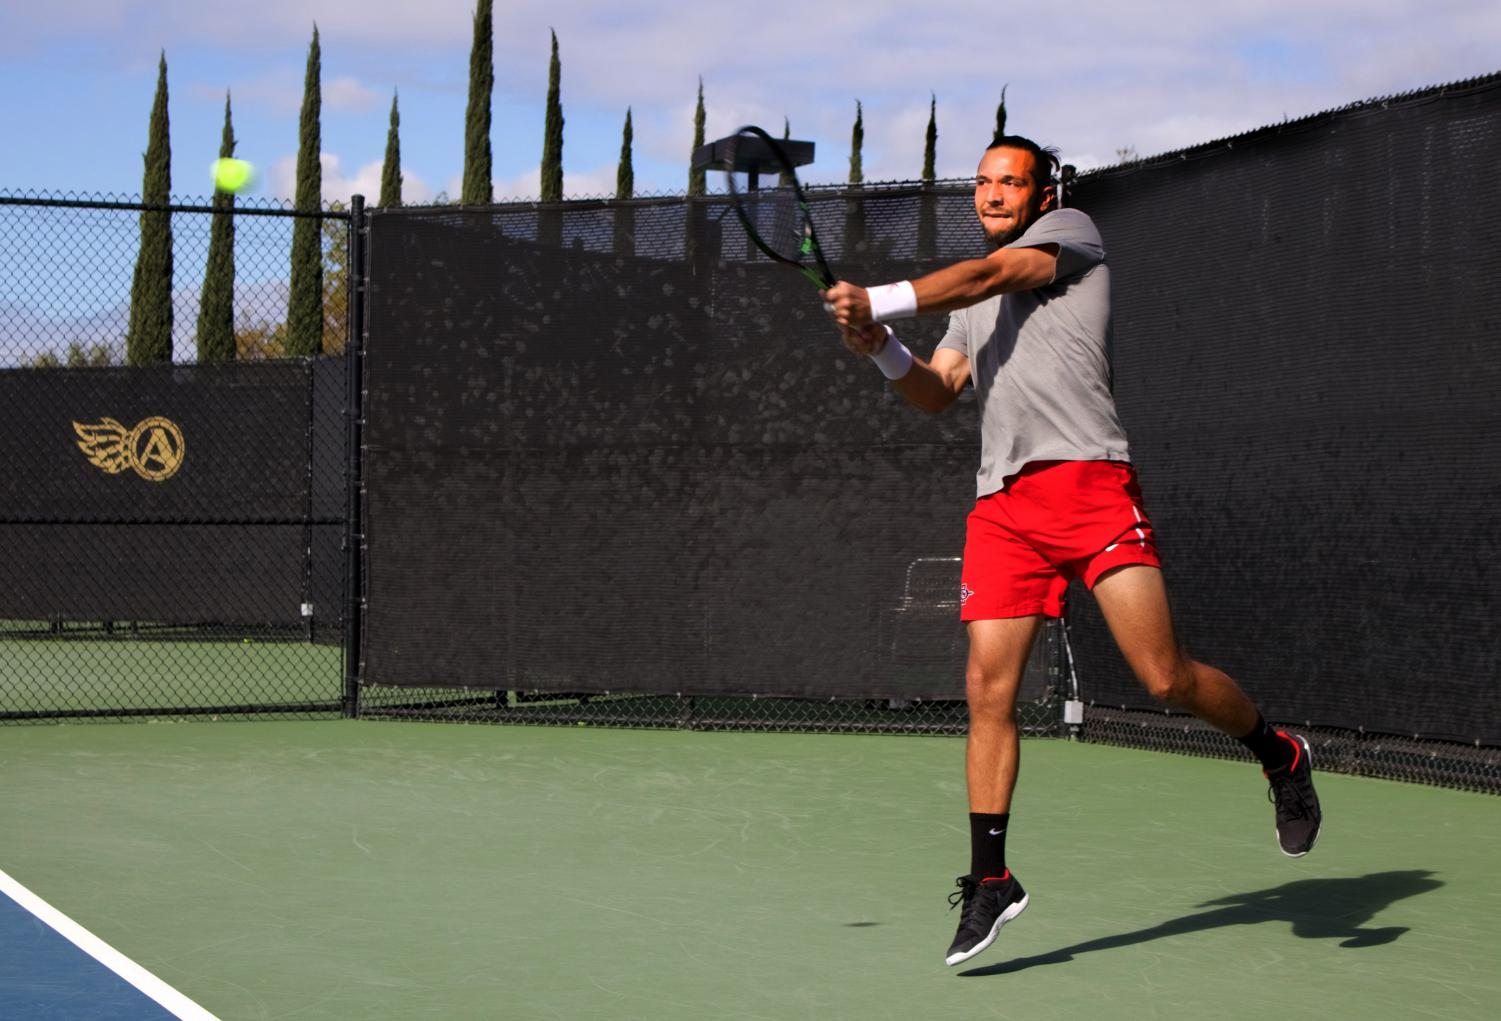 Junior Fabian Roensdorf competes during the Aztecs 4-3 loss to Northern Arizona on Feb. 10 at the Aztec Tennis Center.